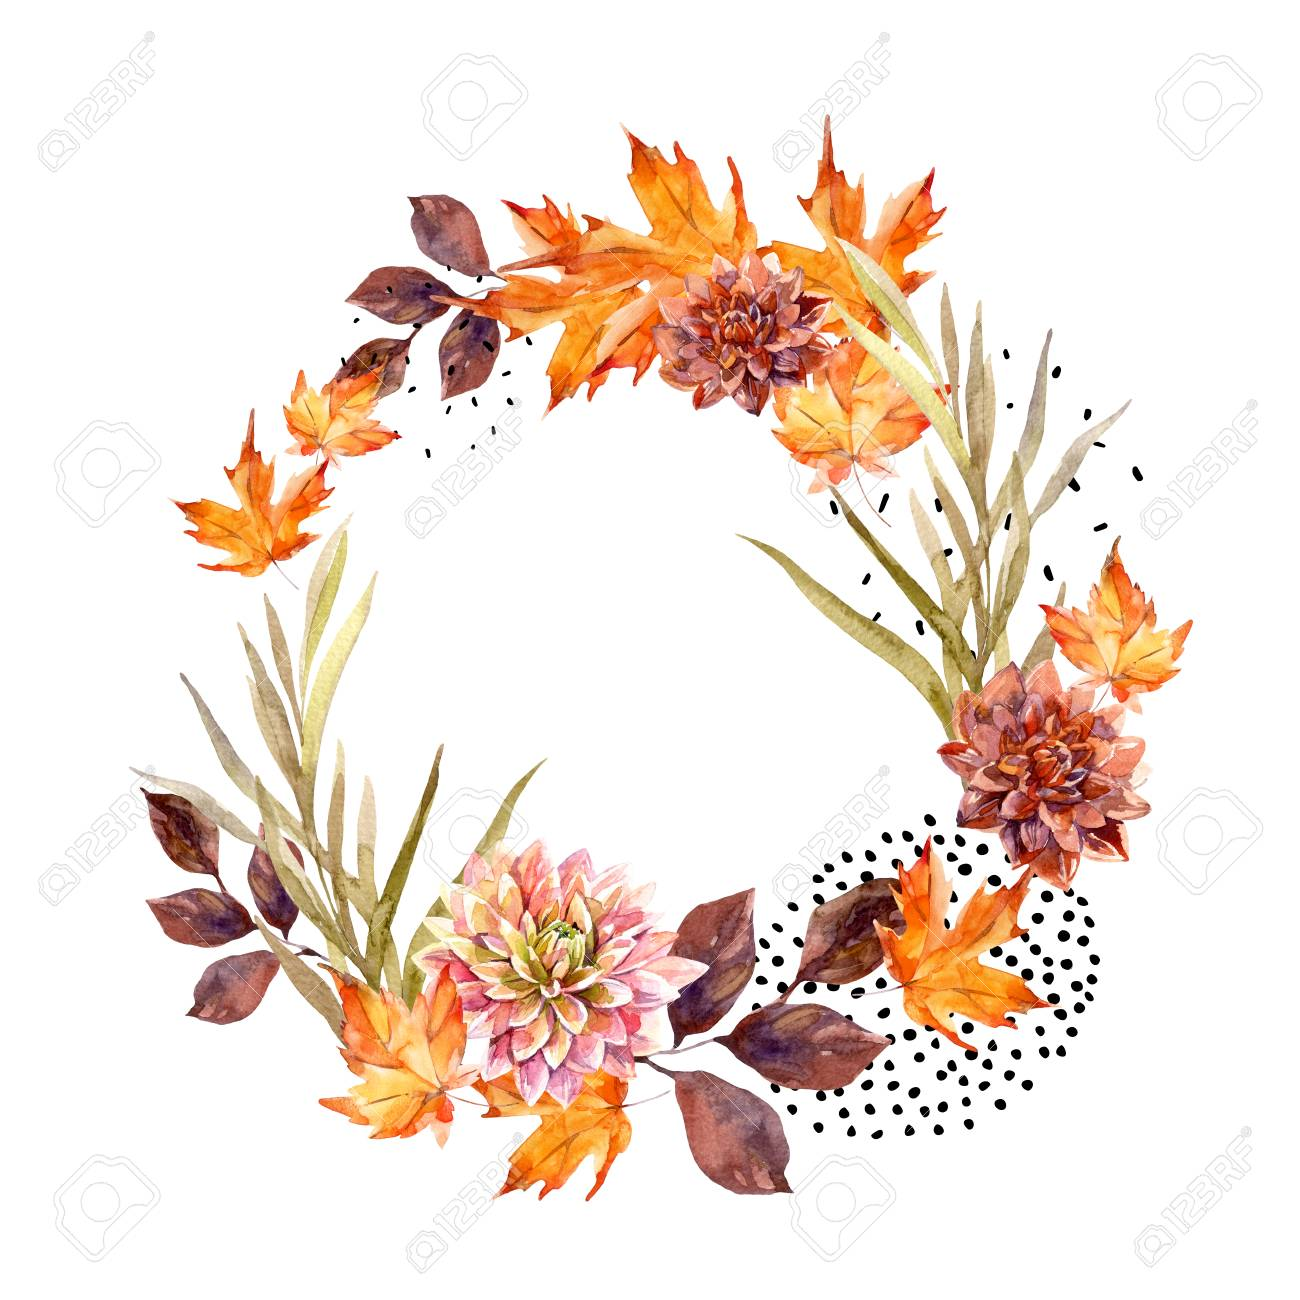 Autumn Watercolor Wreath On Splash Background With Flowers Leaves